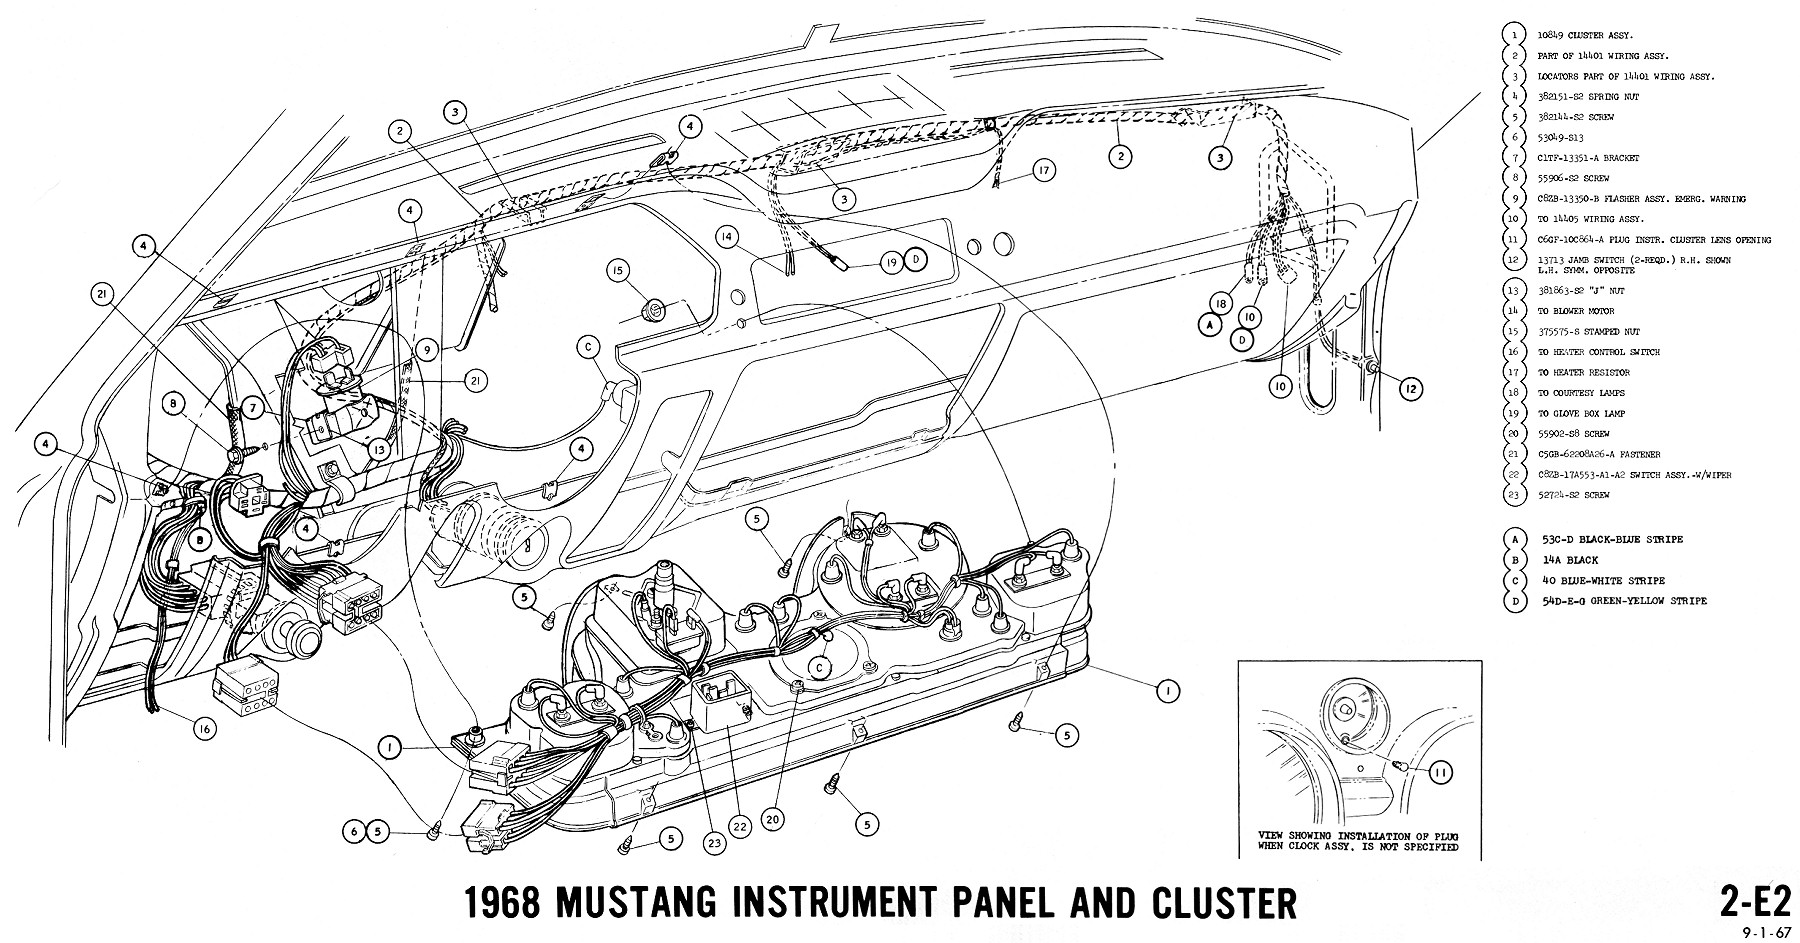 1968 mustang wiring diagram instruments 2 1968 mustang wiring diagrams and vacuum schematics average joe 1966 mustang wiring diagrams at webbmarketing.co